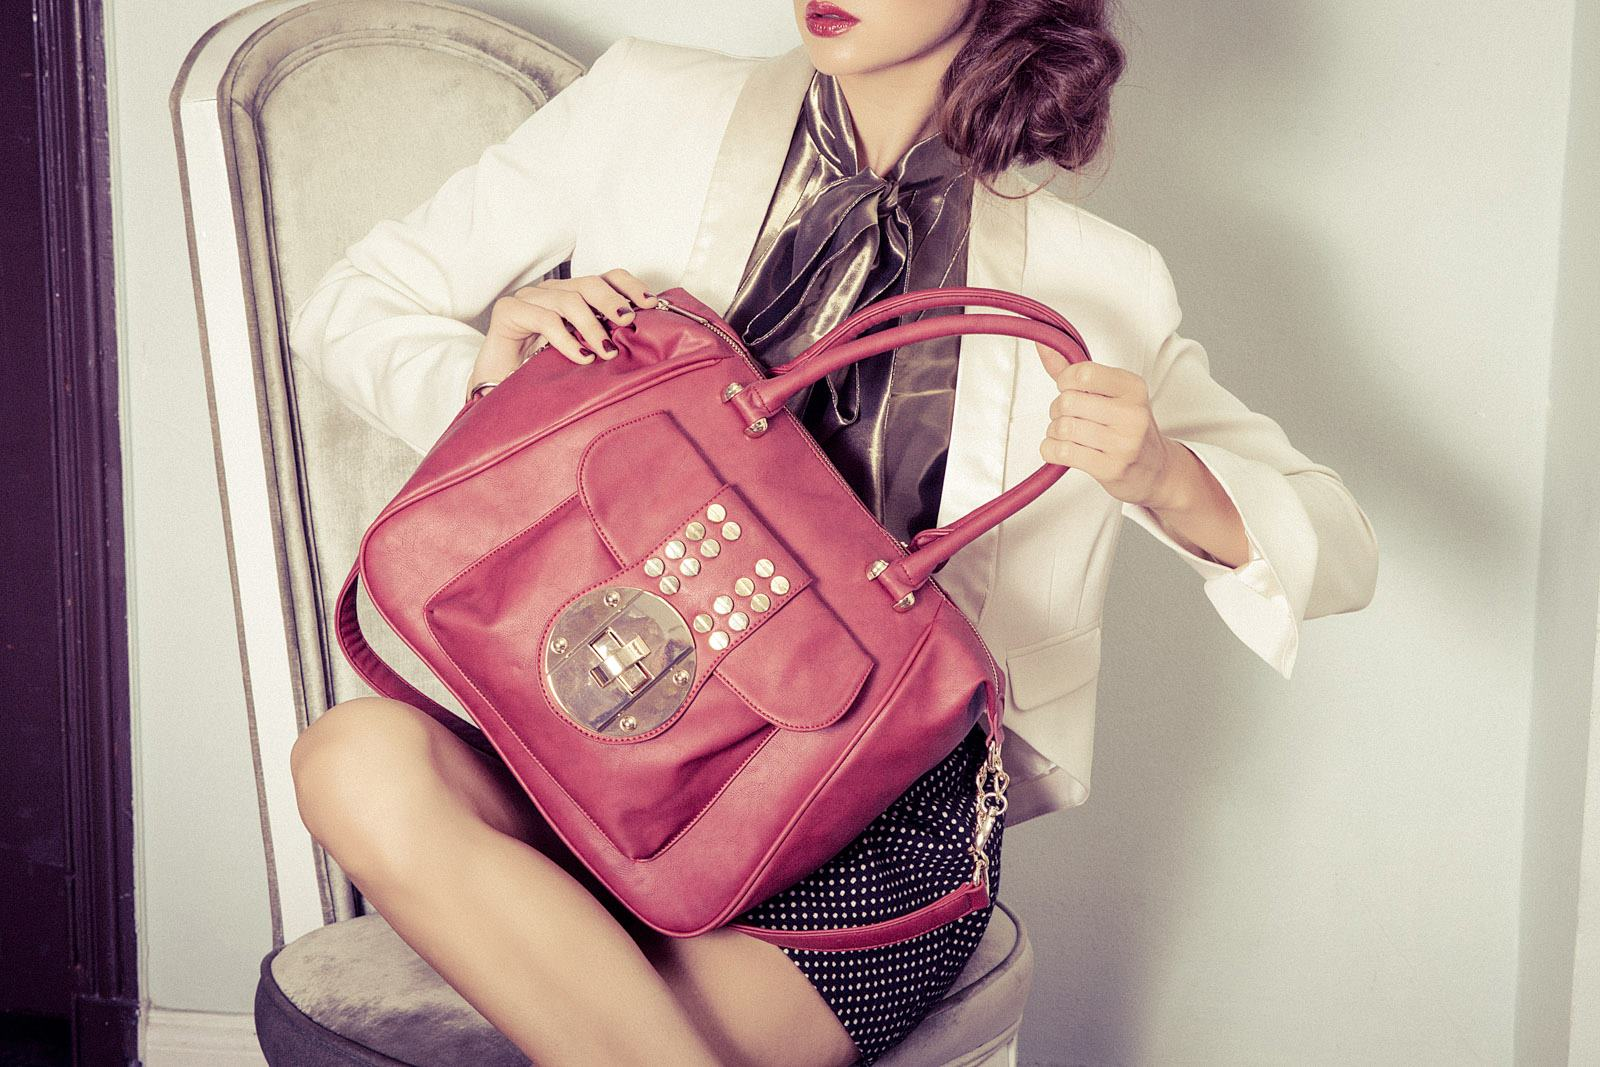 Luxury vegan handbag by Imoshion. Photographed by Los Angeles Fashion Photographer James Hickey.